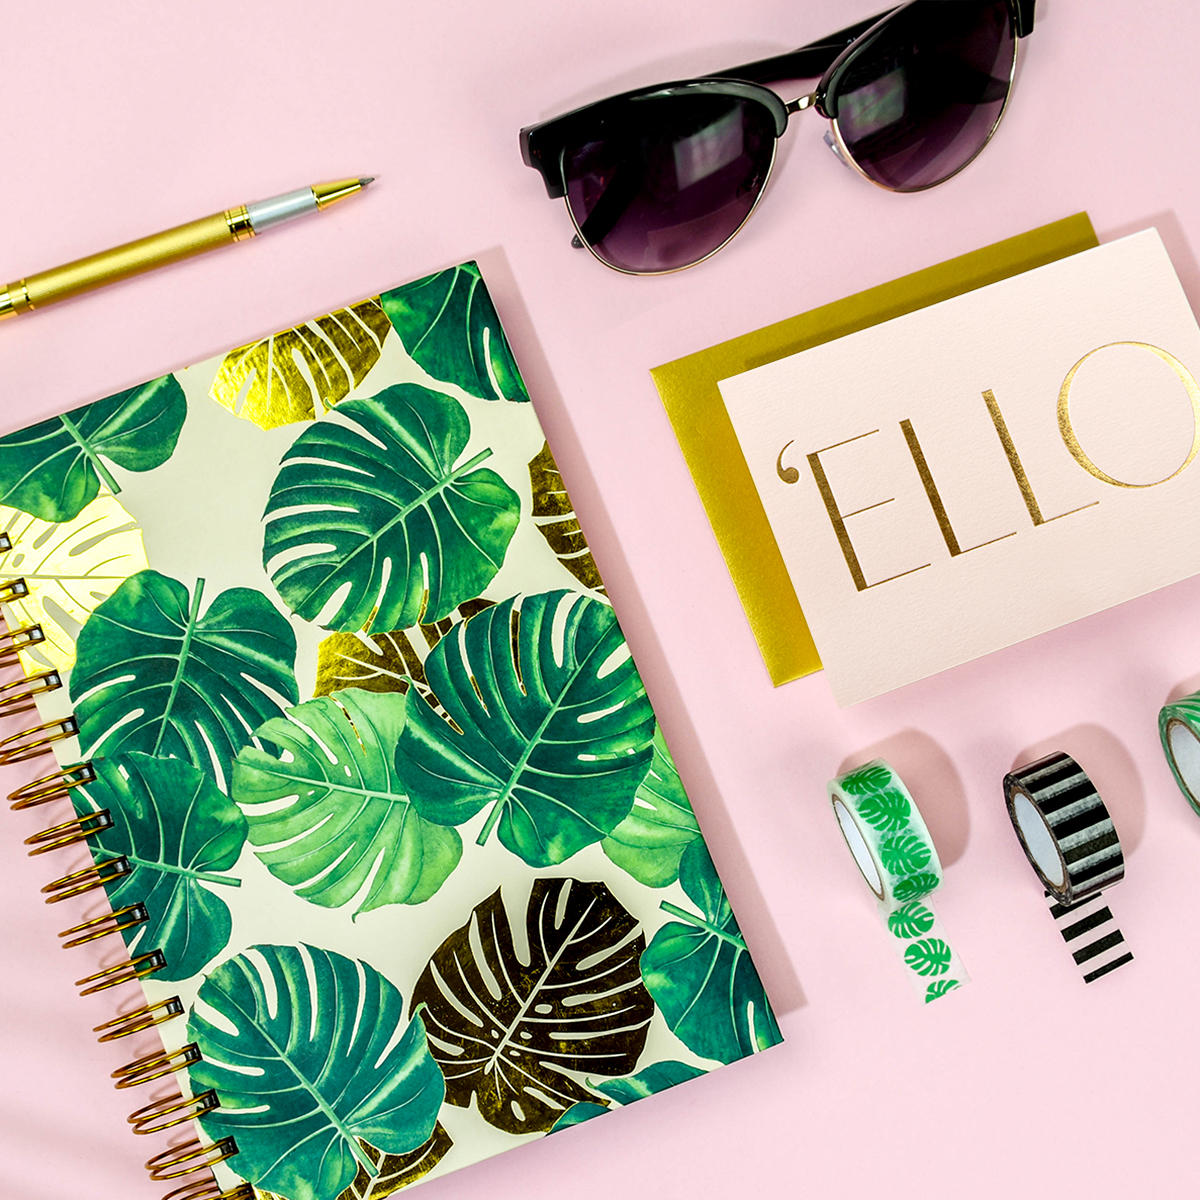 Elum Summer of Stationery Jet Setter Collection